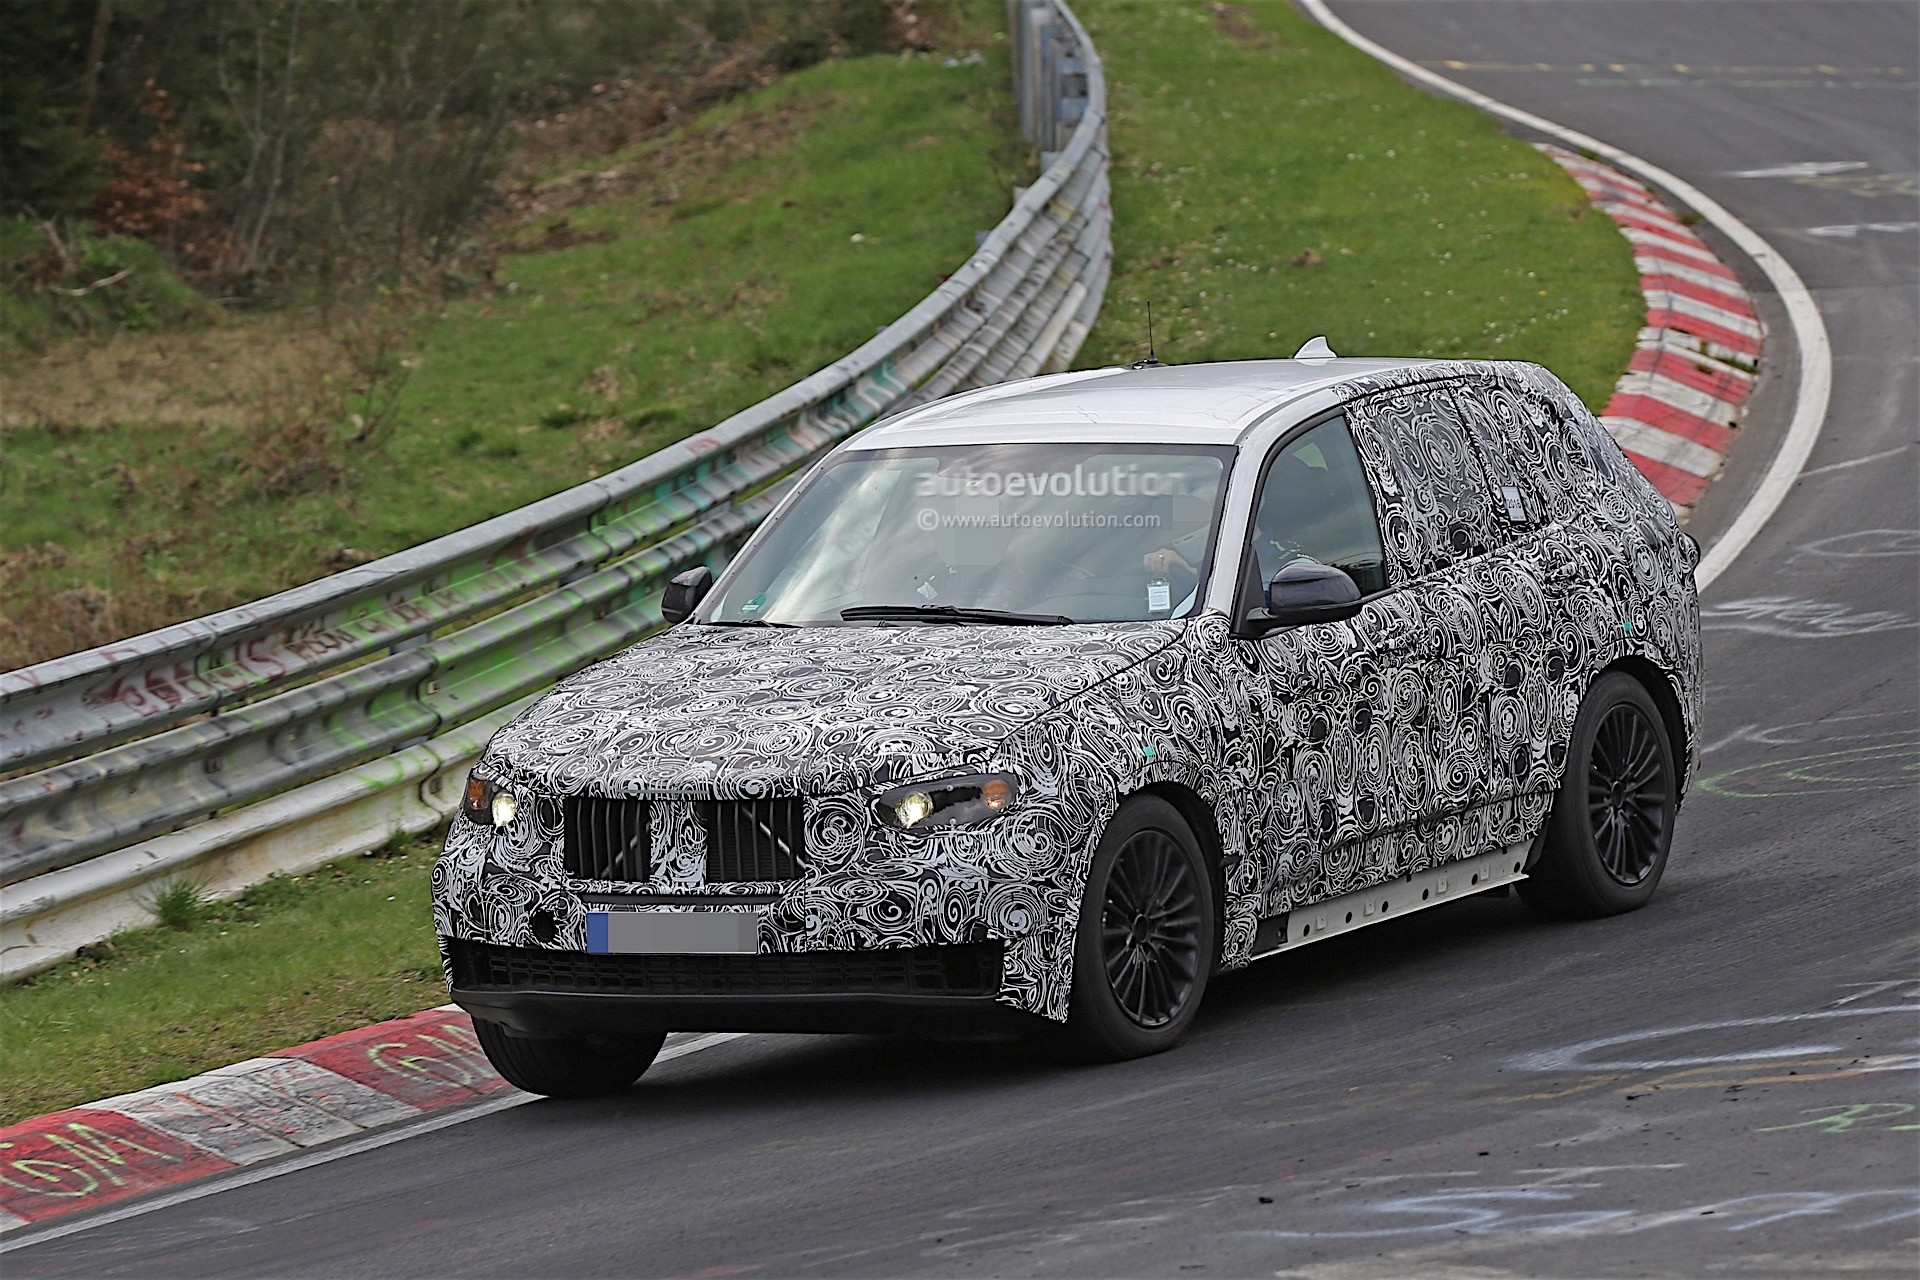 next-gen-2​019-bmw-x5​-laps-nurb​urgring-lo​oks-less-n​ose-heavy-​than-curre​nt-model_3